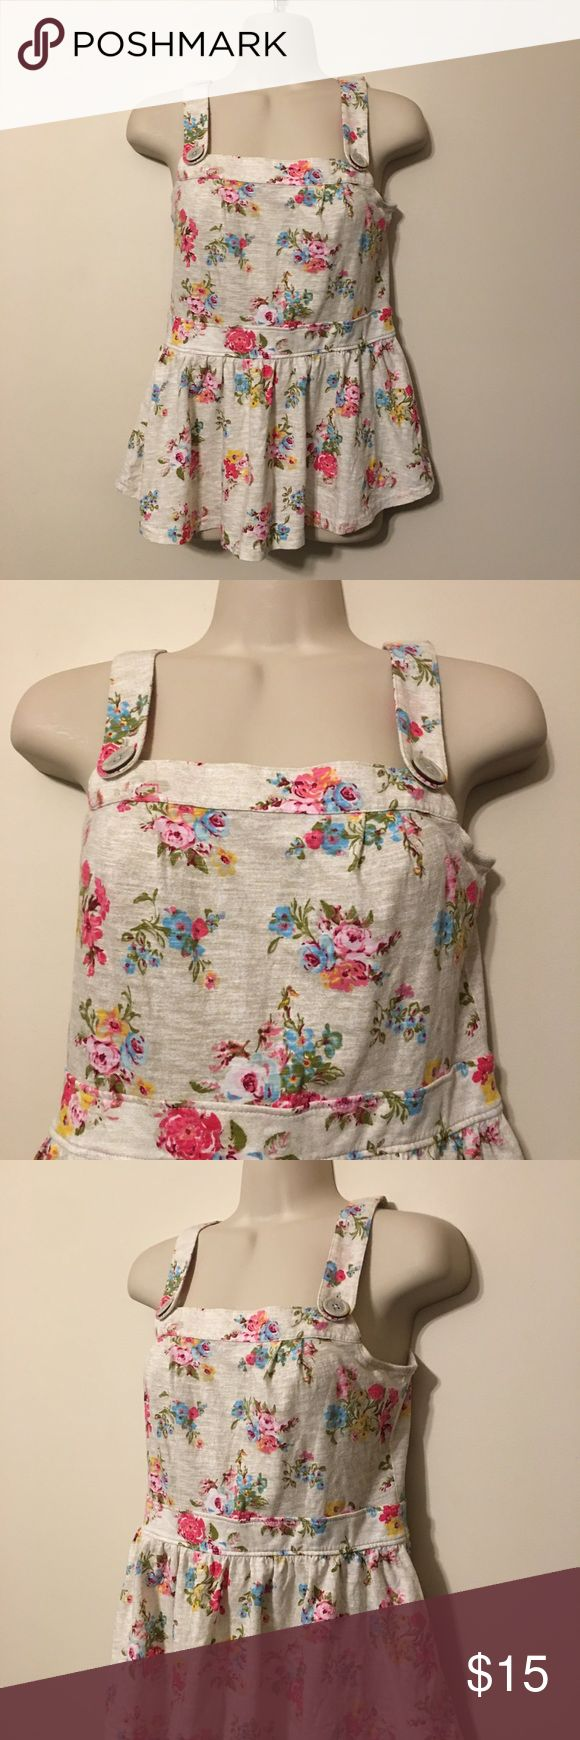 Next Junior's Floral Jumper Tank Next Junior's Floral Jumper Tank. Tag says the size is 13 years. Please ask for measurements before purchasing. Next Tops Tank Tops